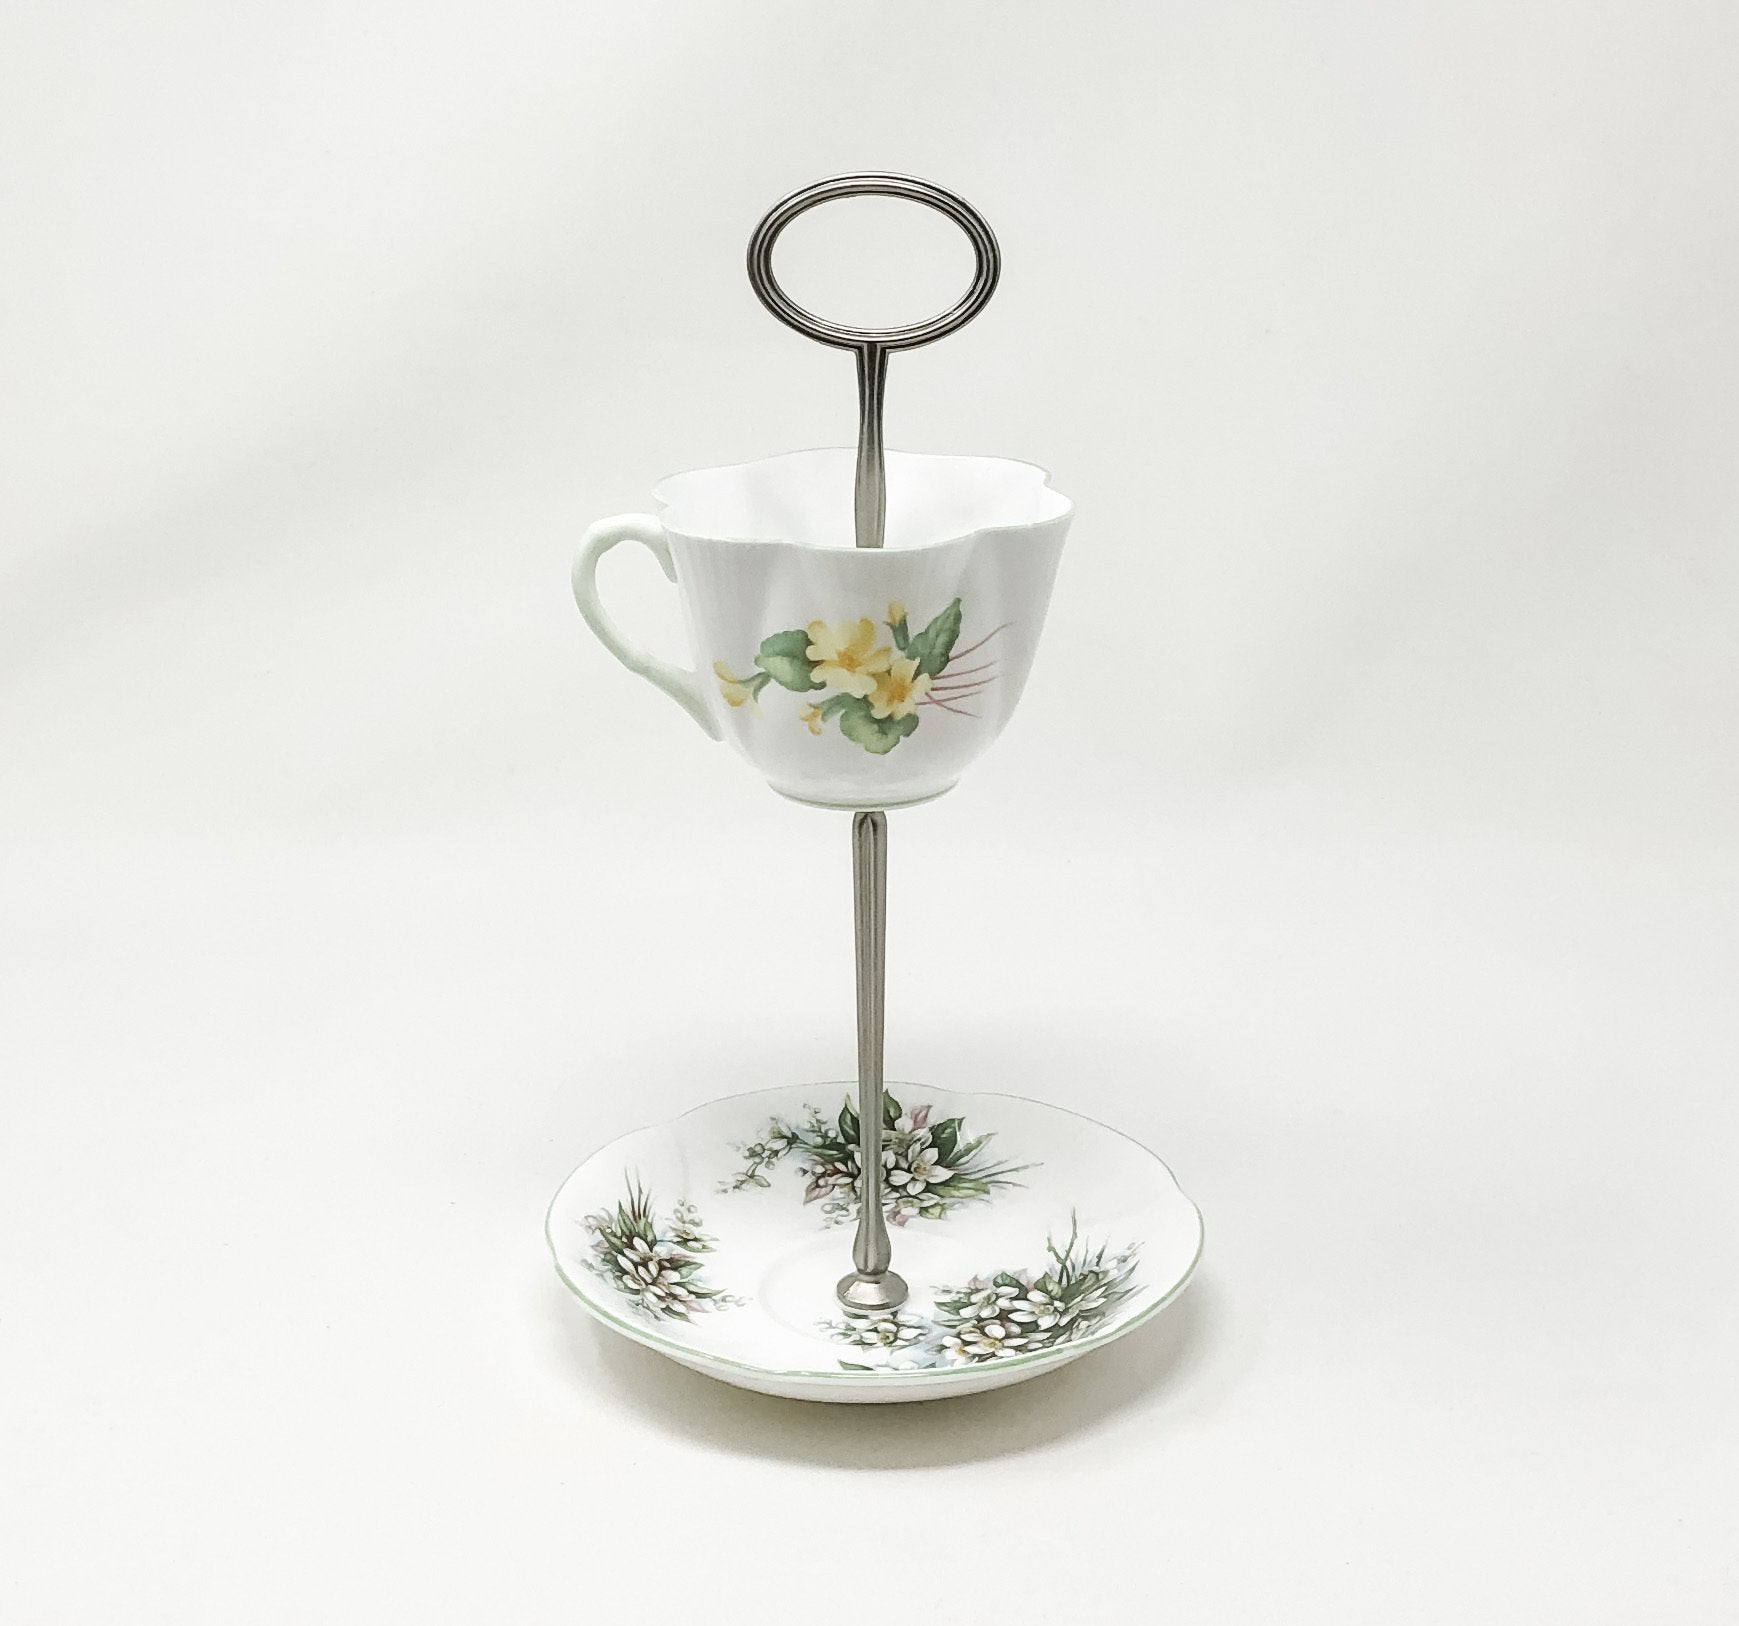 Shelley Green Royal Albert | Teacup & Saucer Stand | Assorted - The Brooklyn Teacup